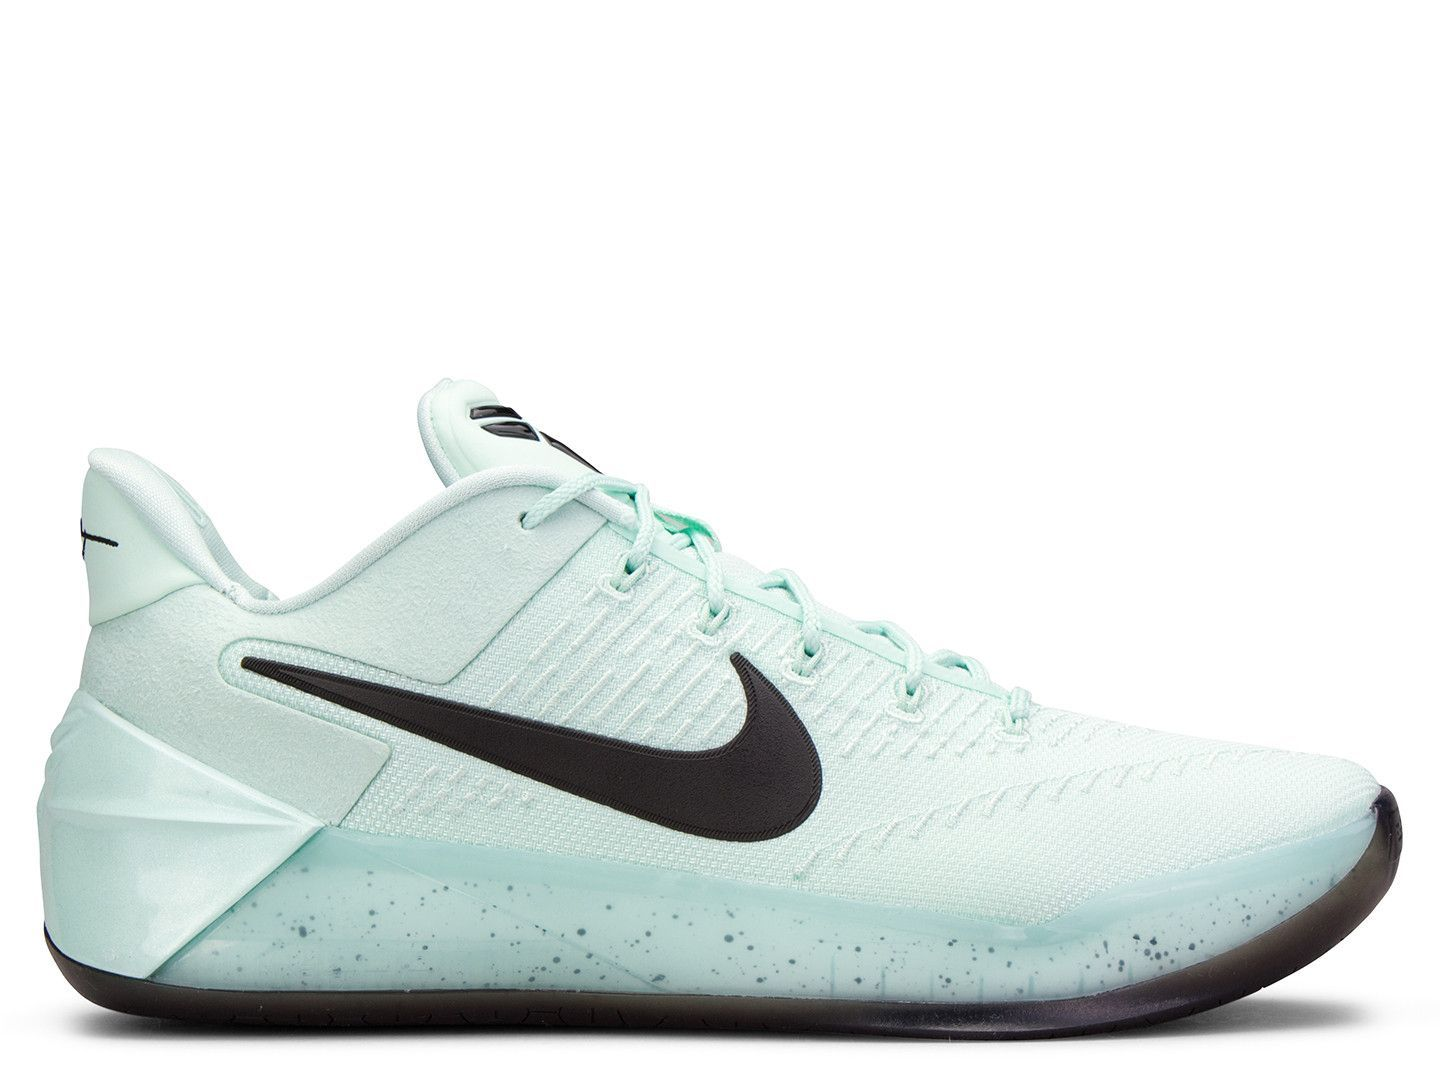 sports shoes 83c0f 0b82e Nike Kobe A.D. Igloo